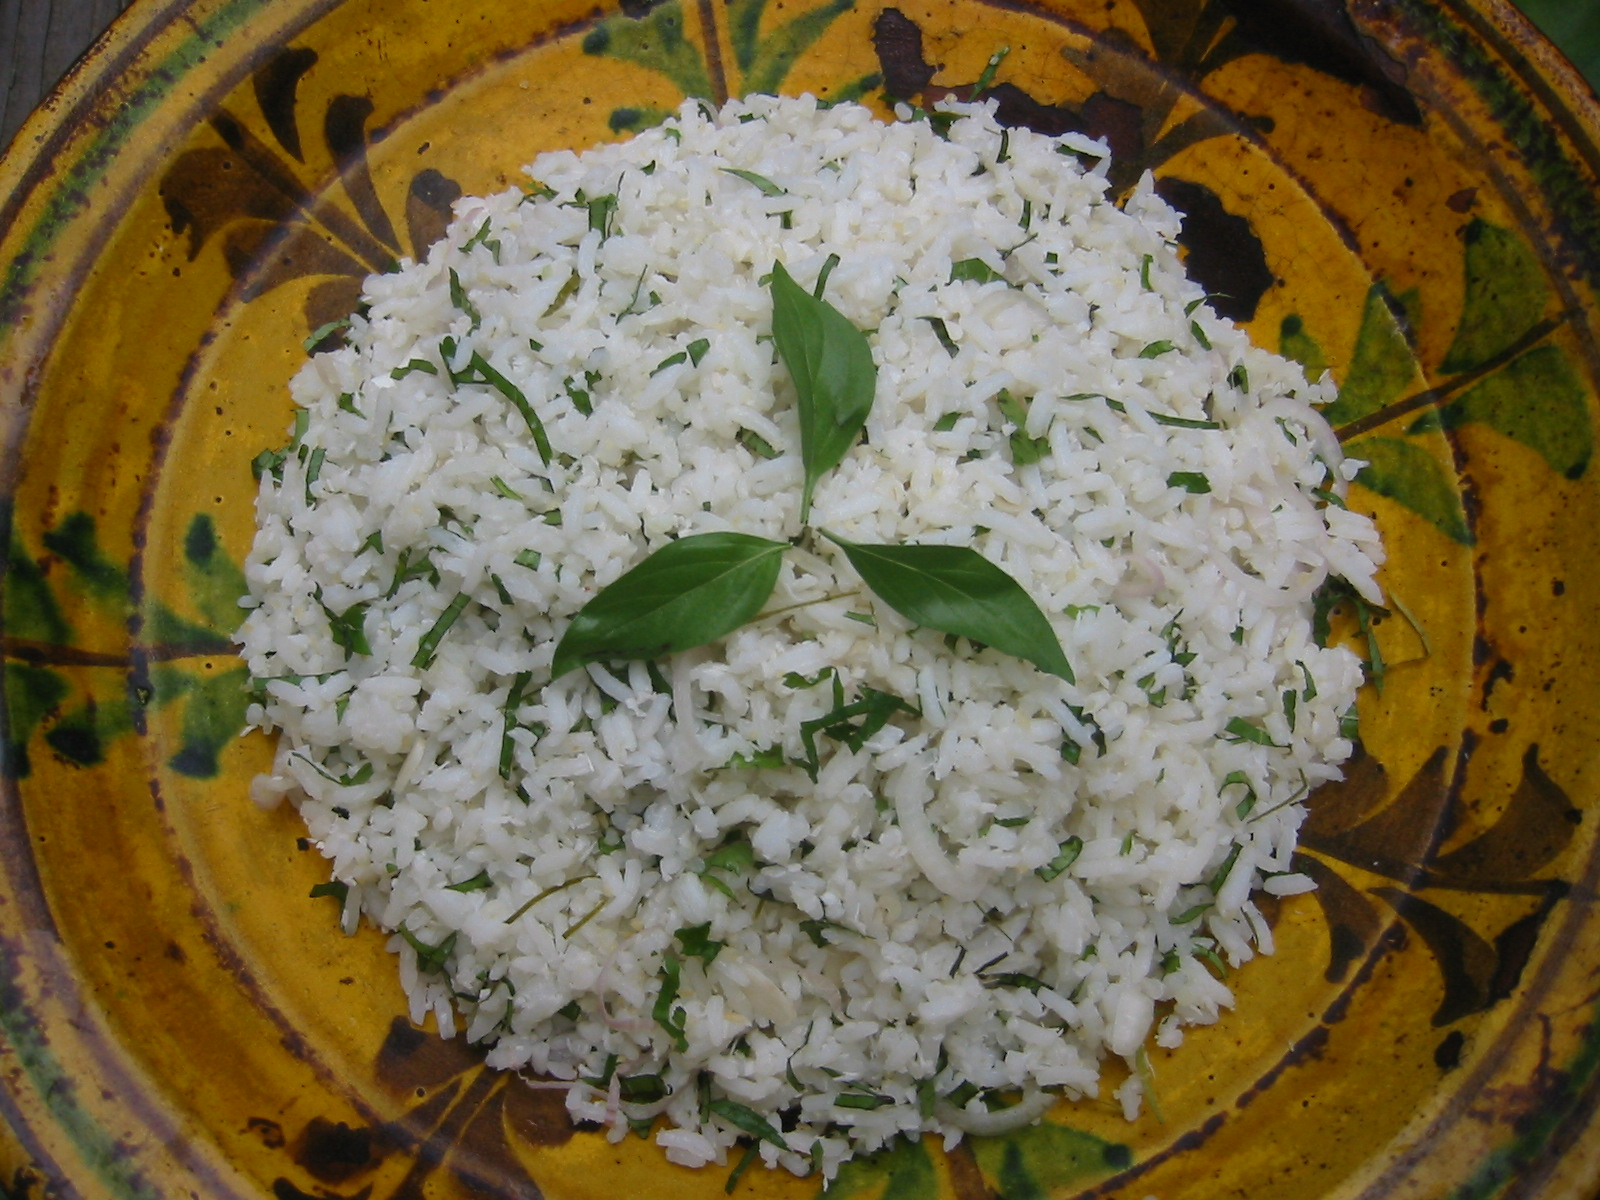 Recipe from malaysia a fragrant jasmine rice salad with lemongrass this malaysian rice salad is ideal summer fare light cooling and scented with forumfinder Image collections